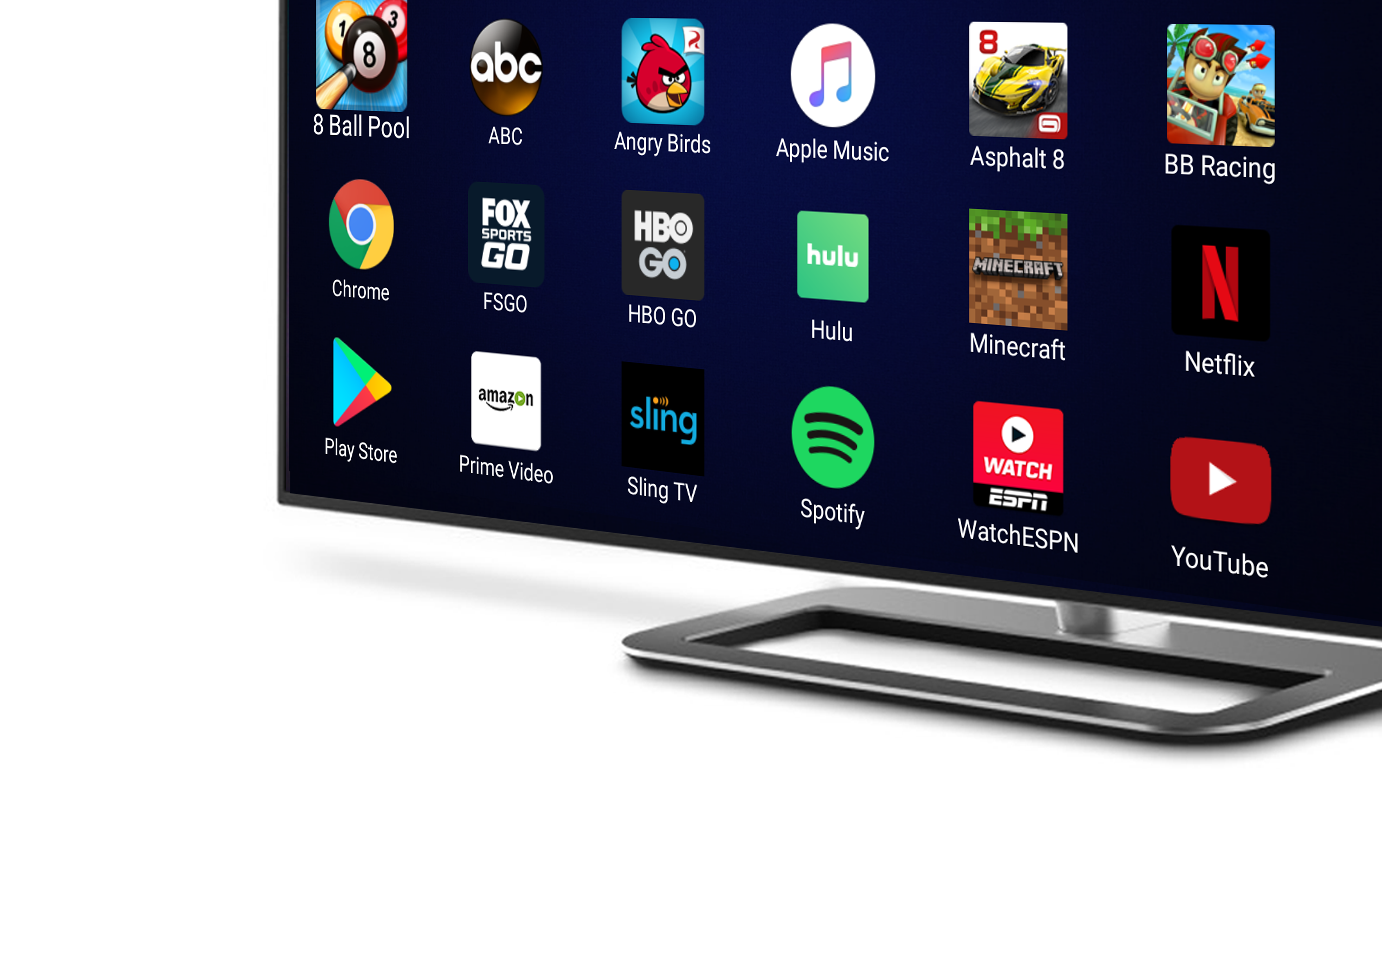 NextD TV - Enabling 1 Million+ Apps On TV